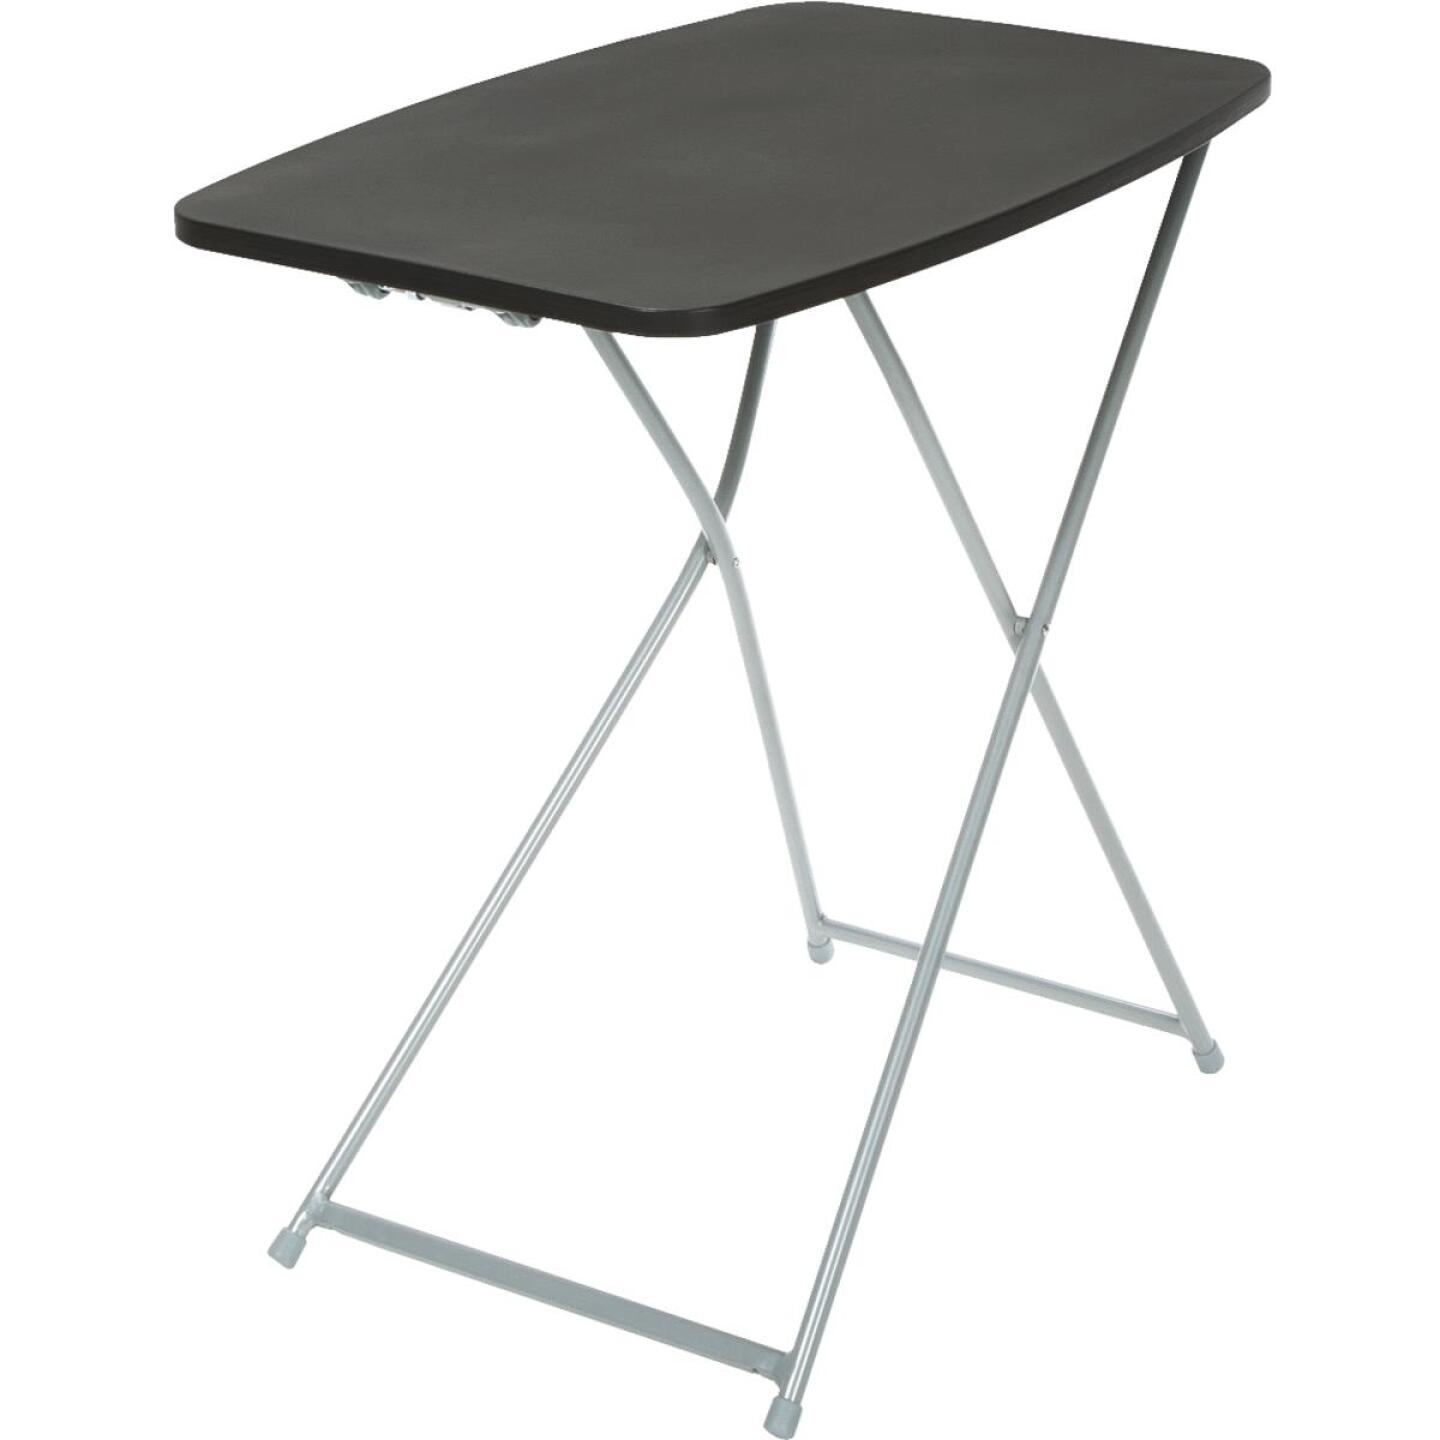 COSCO 26 In. x 18 In. Black Personal Folding Table Image 1